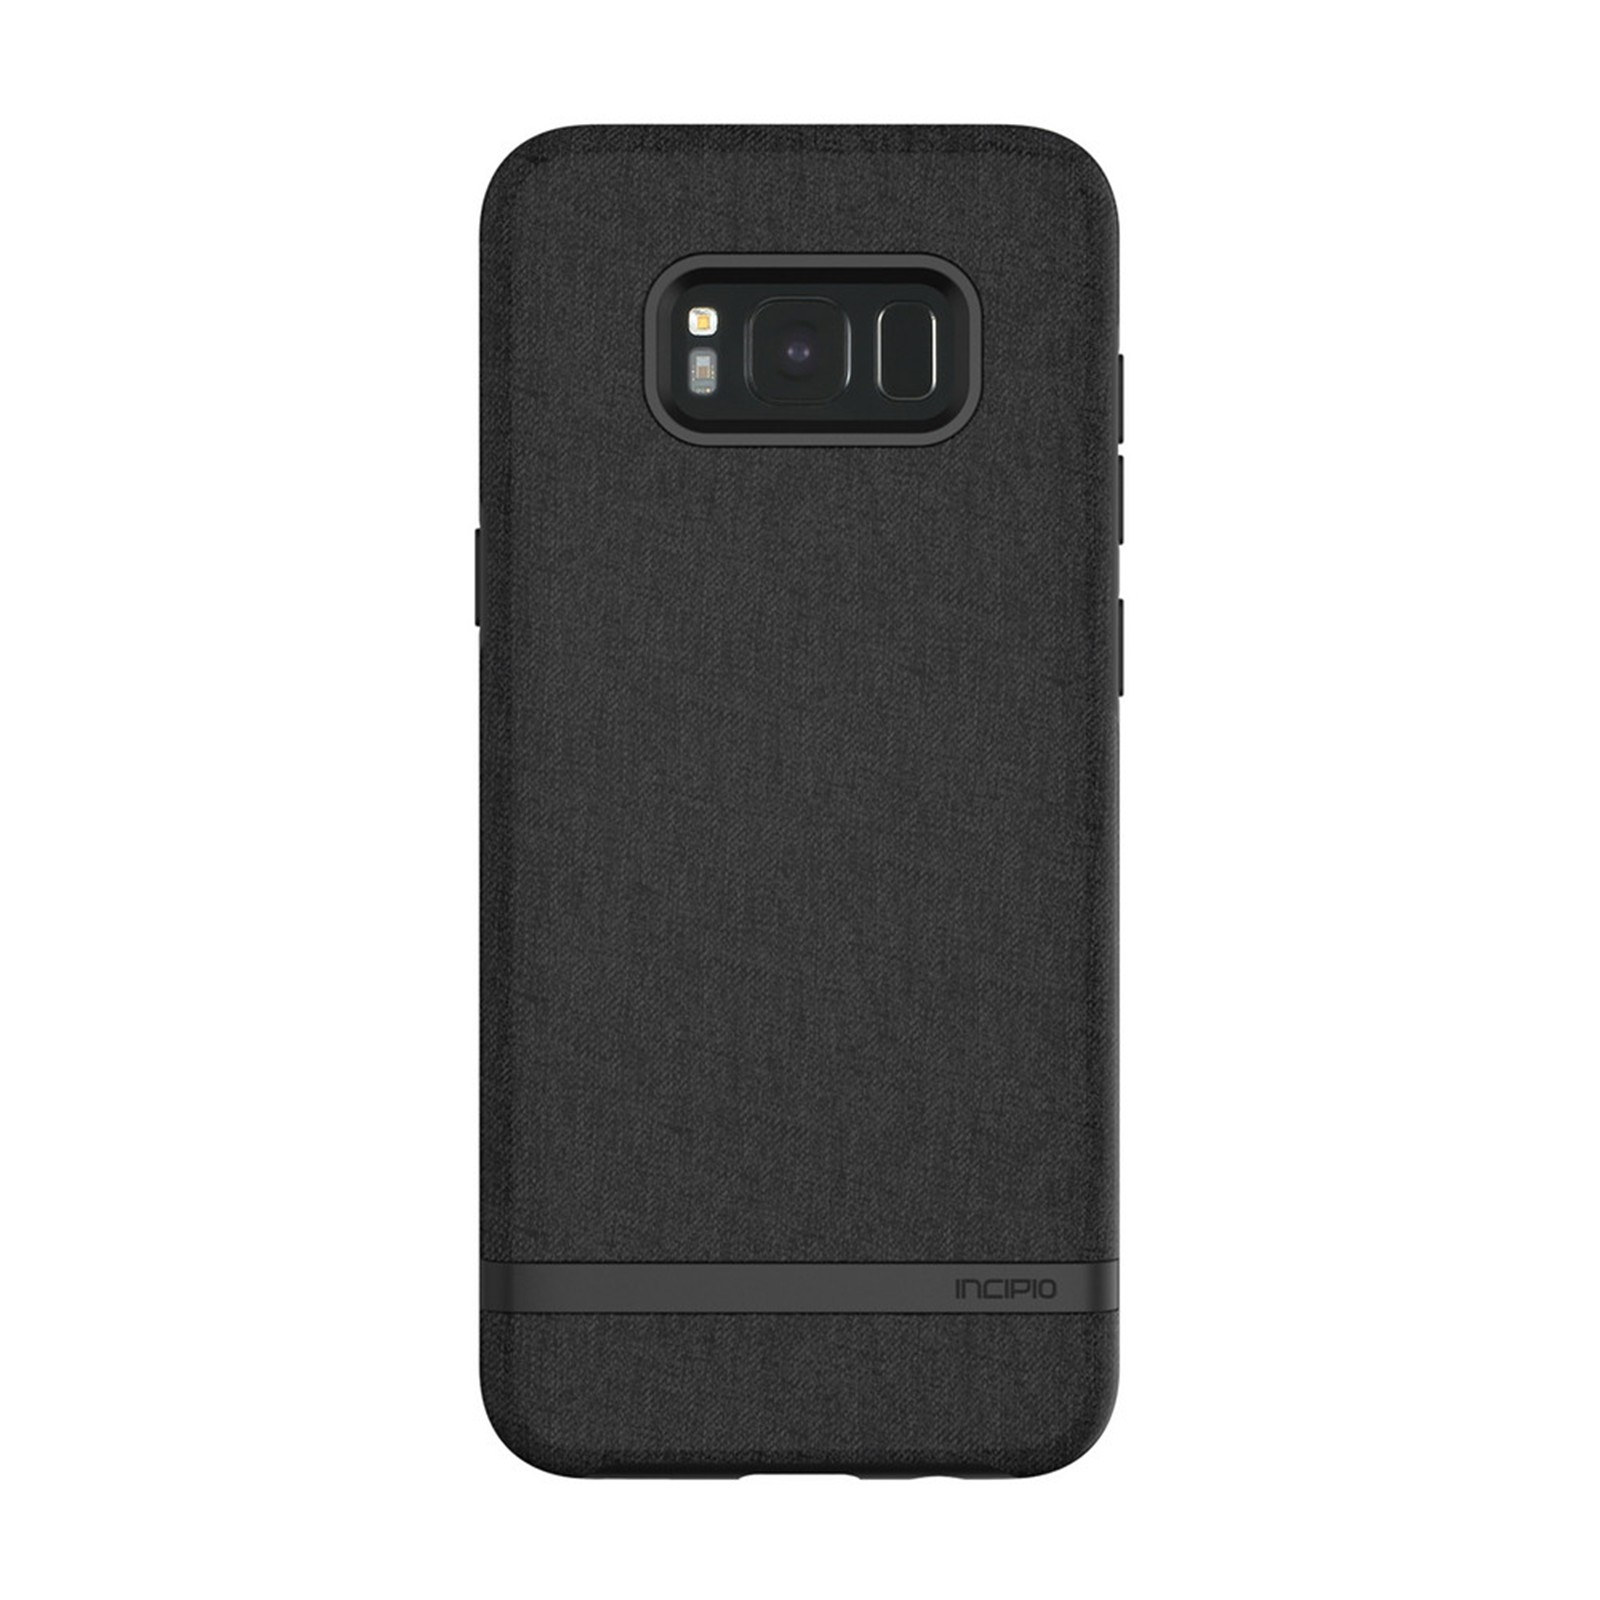 sports shoes 437f6 4beee Buy the INCIPIO Esquire Series Case for Samsung Galaxy S8+ - Black ...